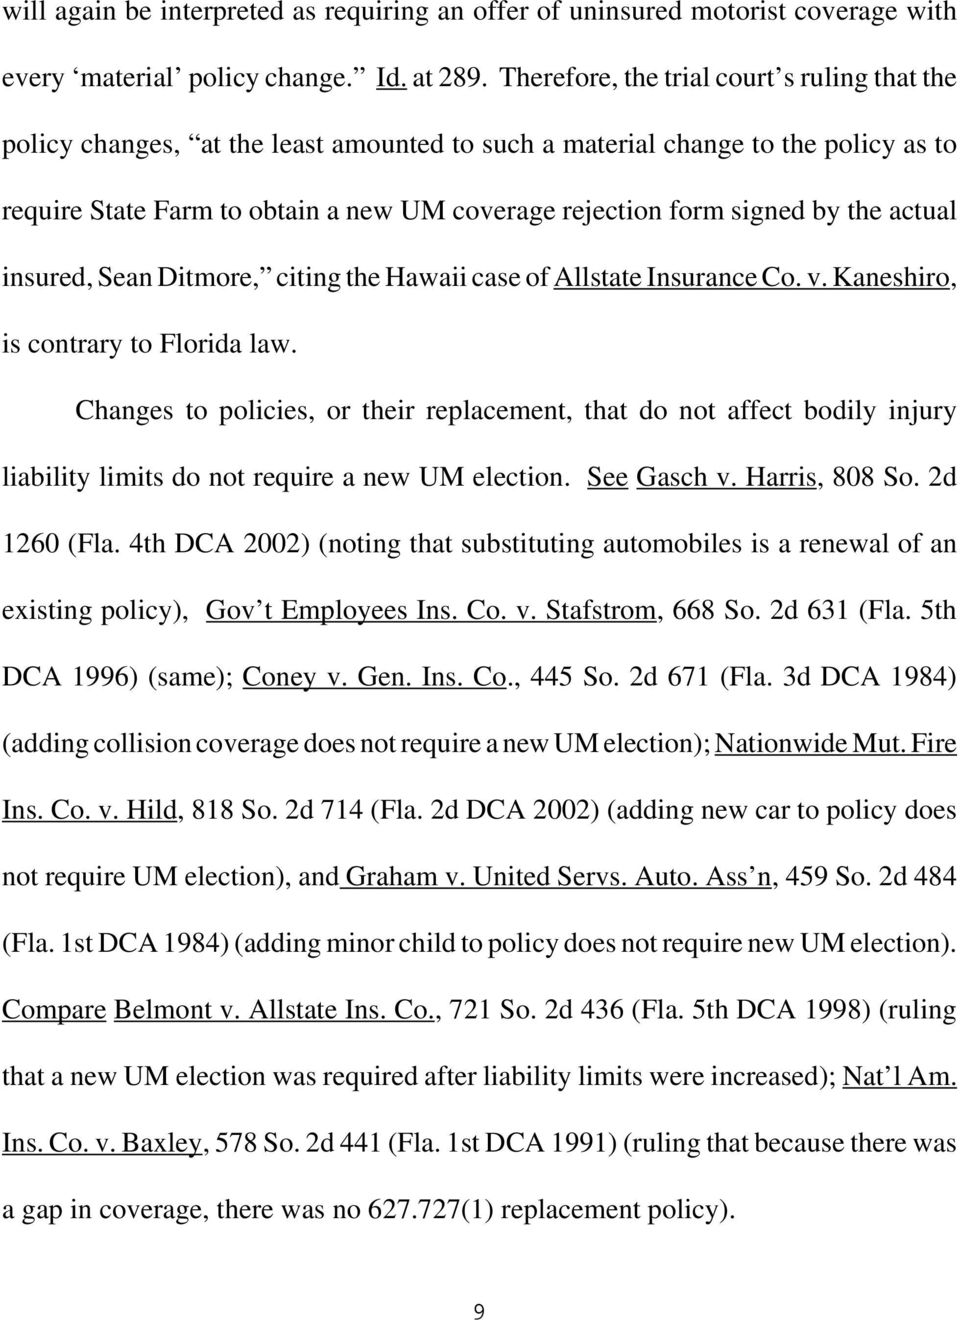 by the actual insured, Sean Ditmore, citing the Hawaii case of Allstate Insurance Co. v. Kaneshiro, is contrary to Florida law.